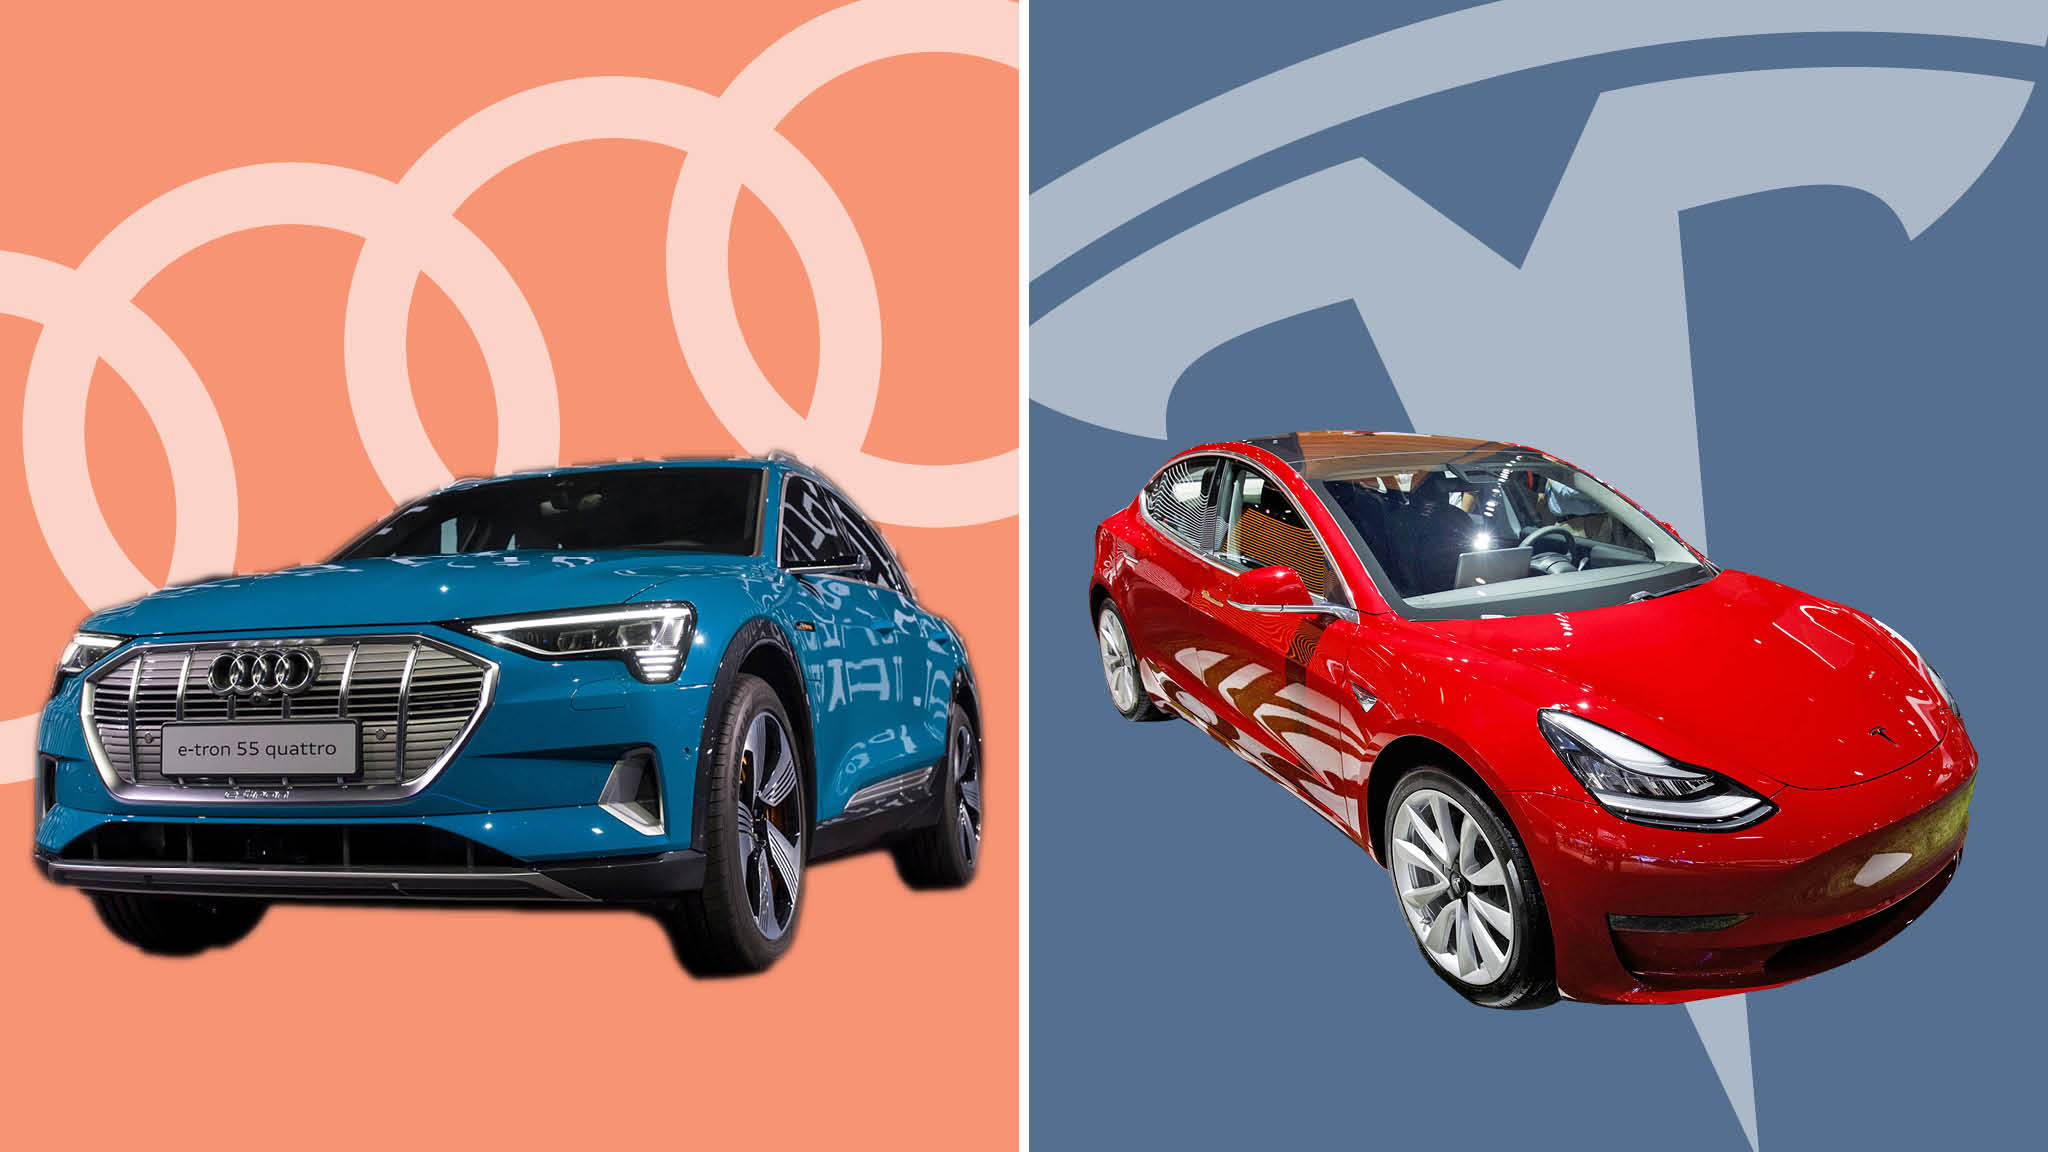 Electric Car Rivals Revved Up To Chal Ge Tesla